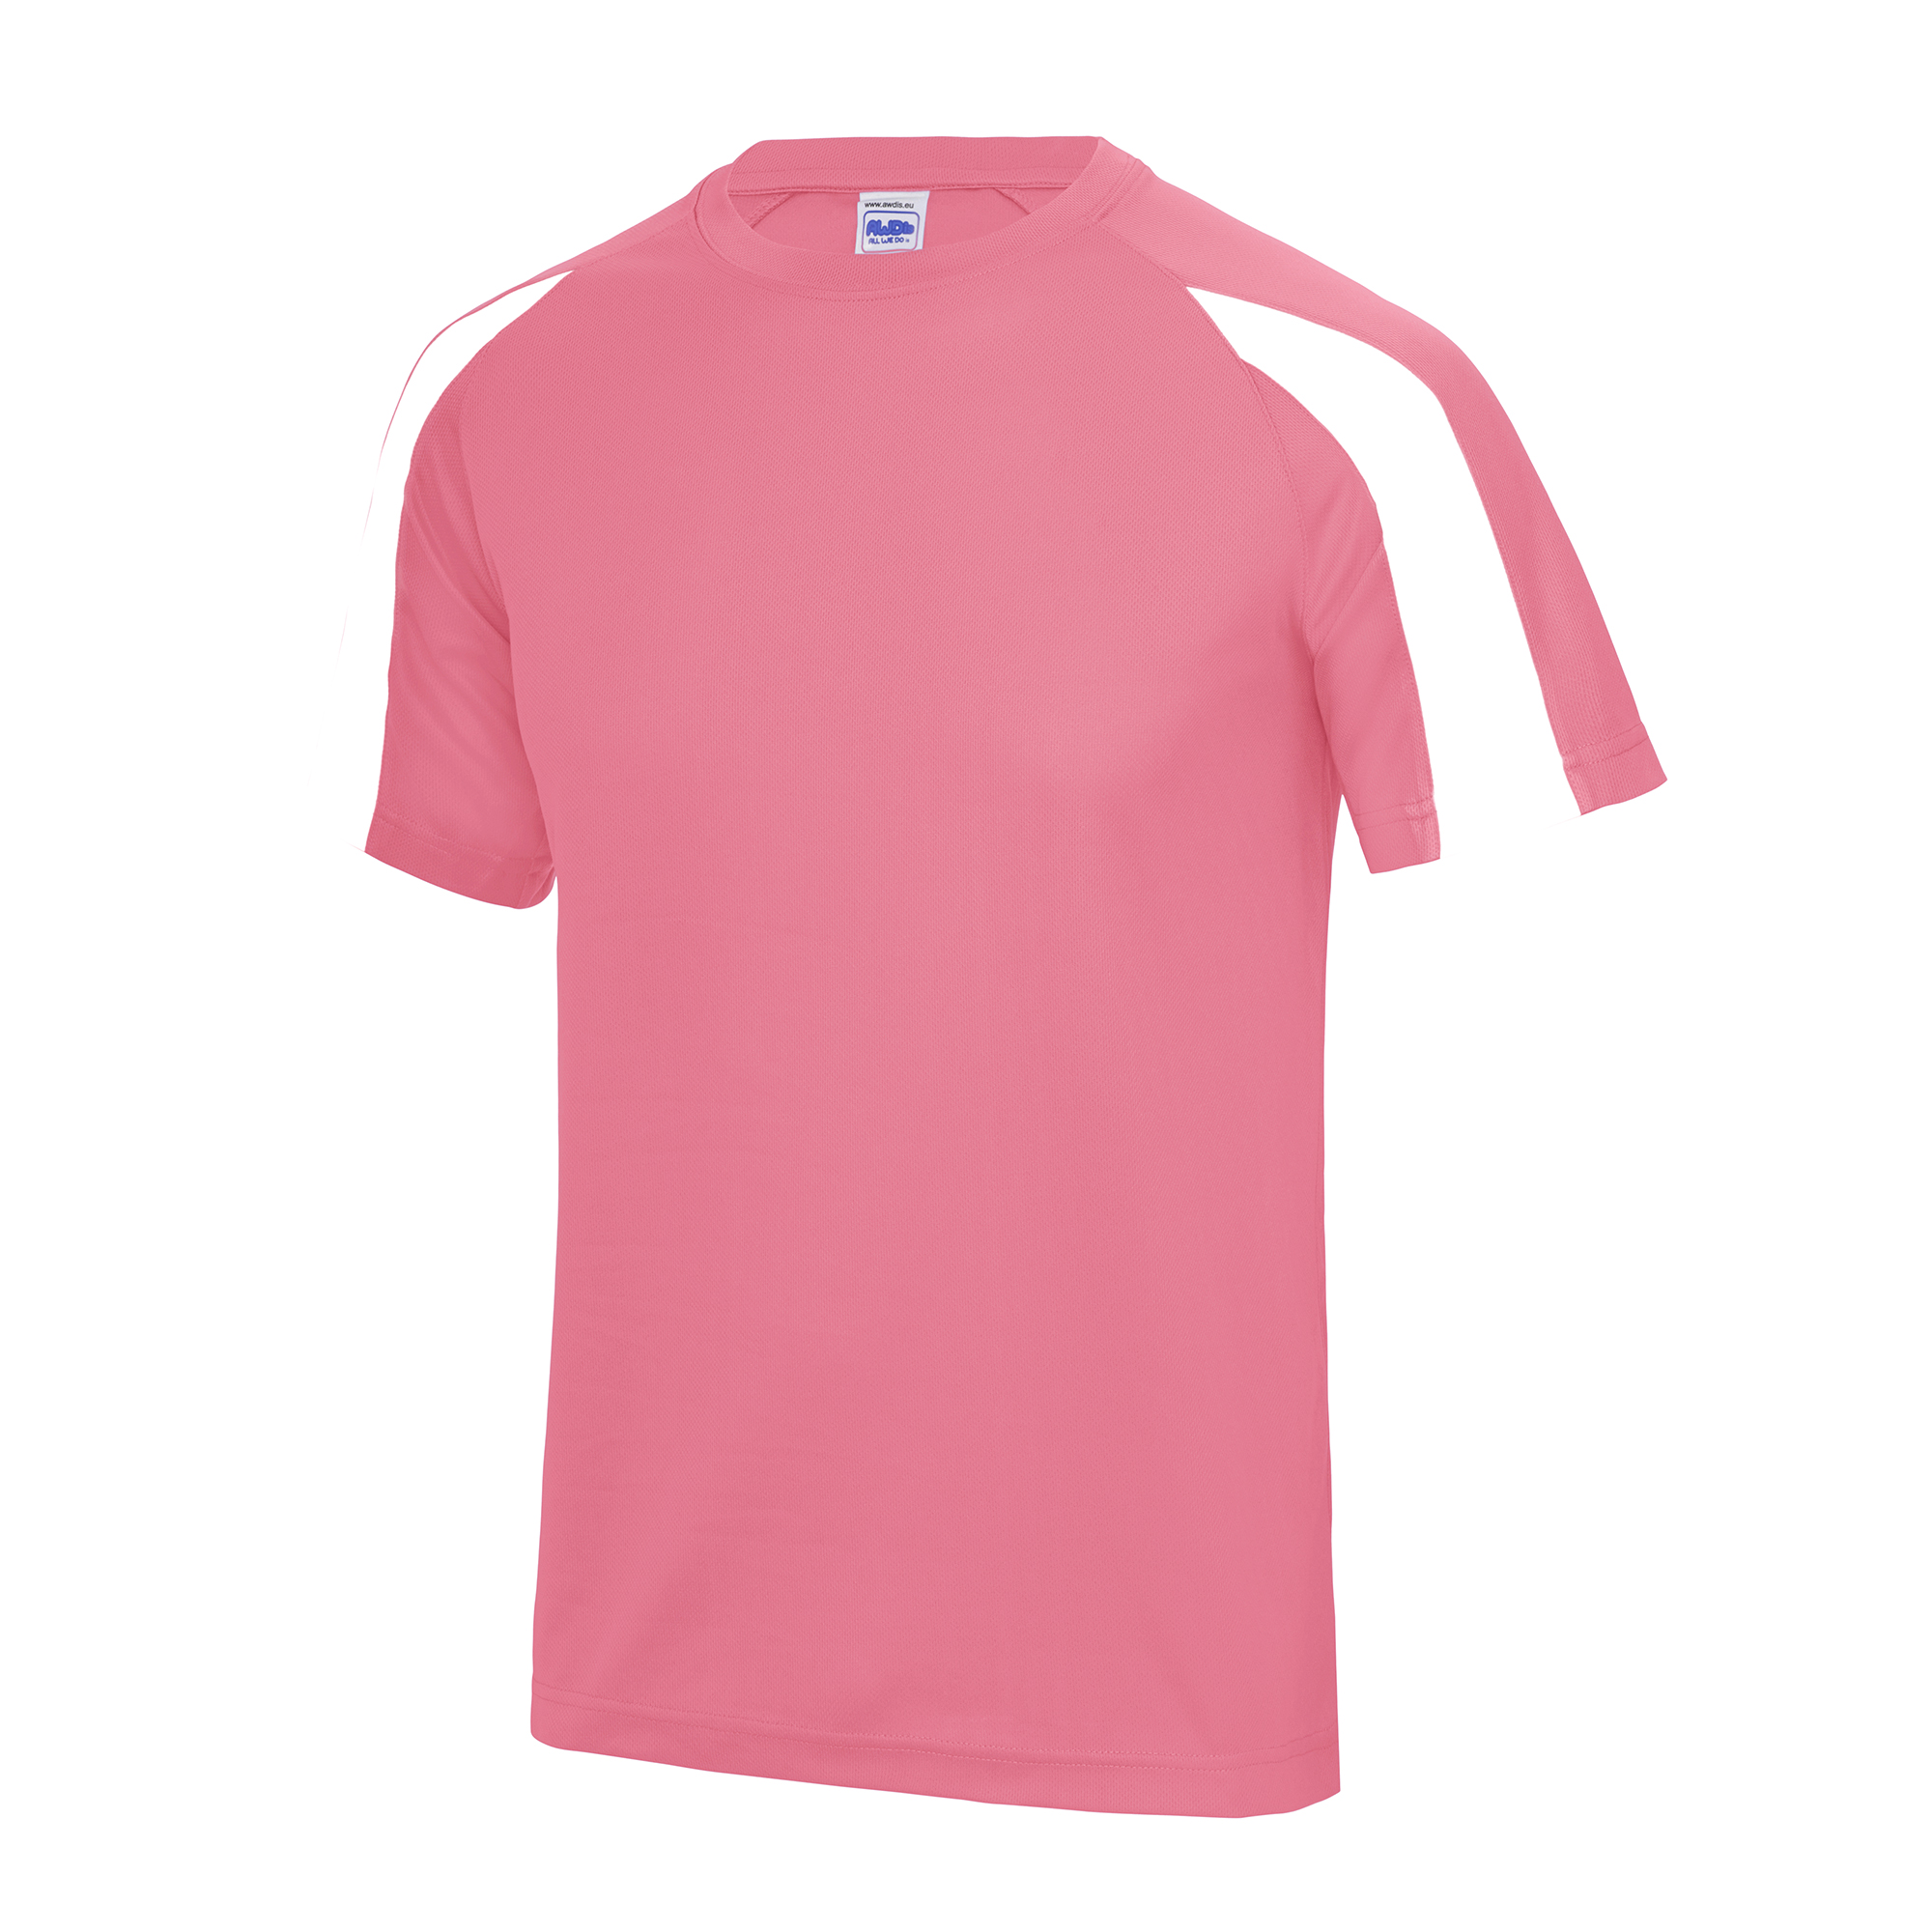 Just Cool Mens Contrast Sports Gym Plain T-Shirt 15 Colours Szs S-2XL RW685